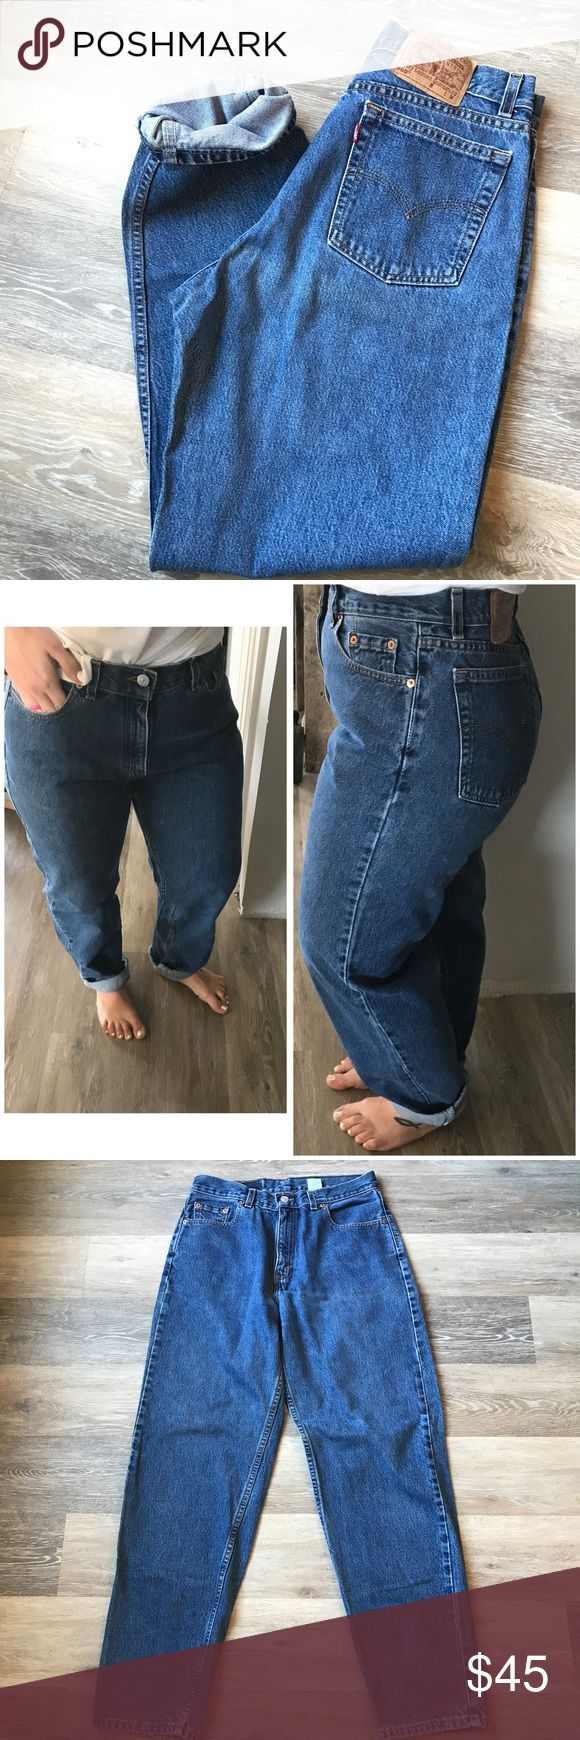 """Vintage Levi's 560 High Waisted Mom Jeans Vintage Levi's 560 High Waisted Mom Jeans  Loose Fit Straight leg Amazingly Comfortable! Medium wash  Made in U.S.A. 100% Cotton  Tagged 12 MIS M - fit tts imo, but please compare measurements   Waist 15"""" laying flat  Rise 12-12.5"""" Hips 22"""" Inseam 31"""" I'm 5'2... so I did have to roll these for try on ..  **Please see all pics and compare your personal measurements to the measurements above * With vintage wear comes fading, small stains, holes and…"""